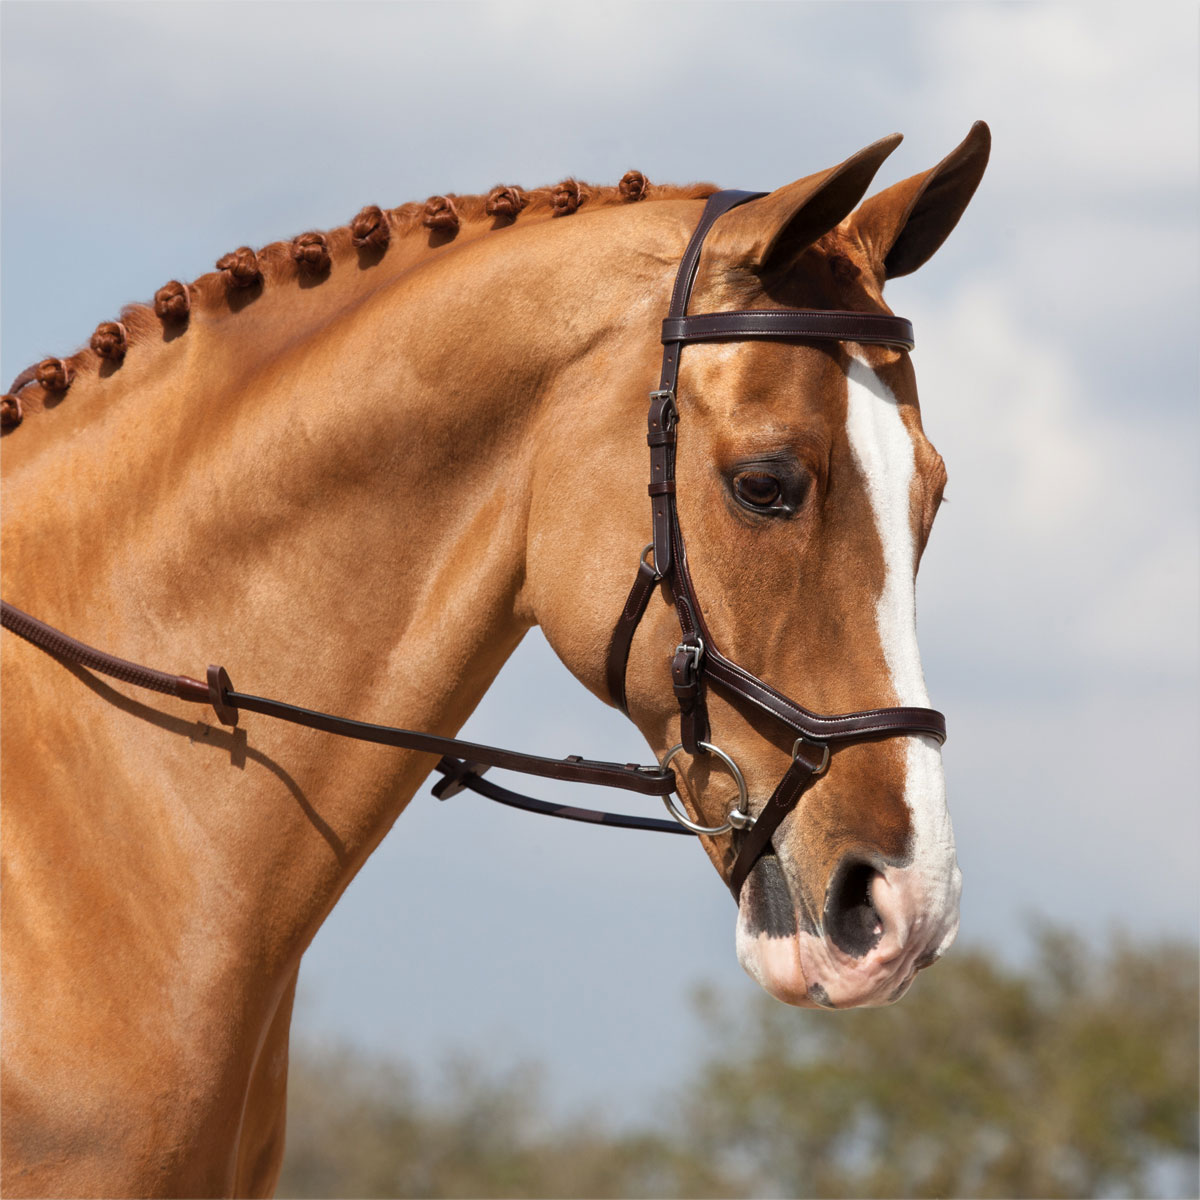 Know your nosebands